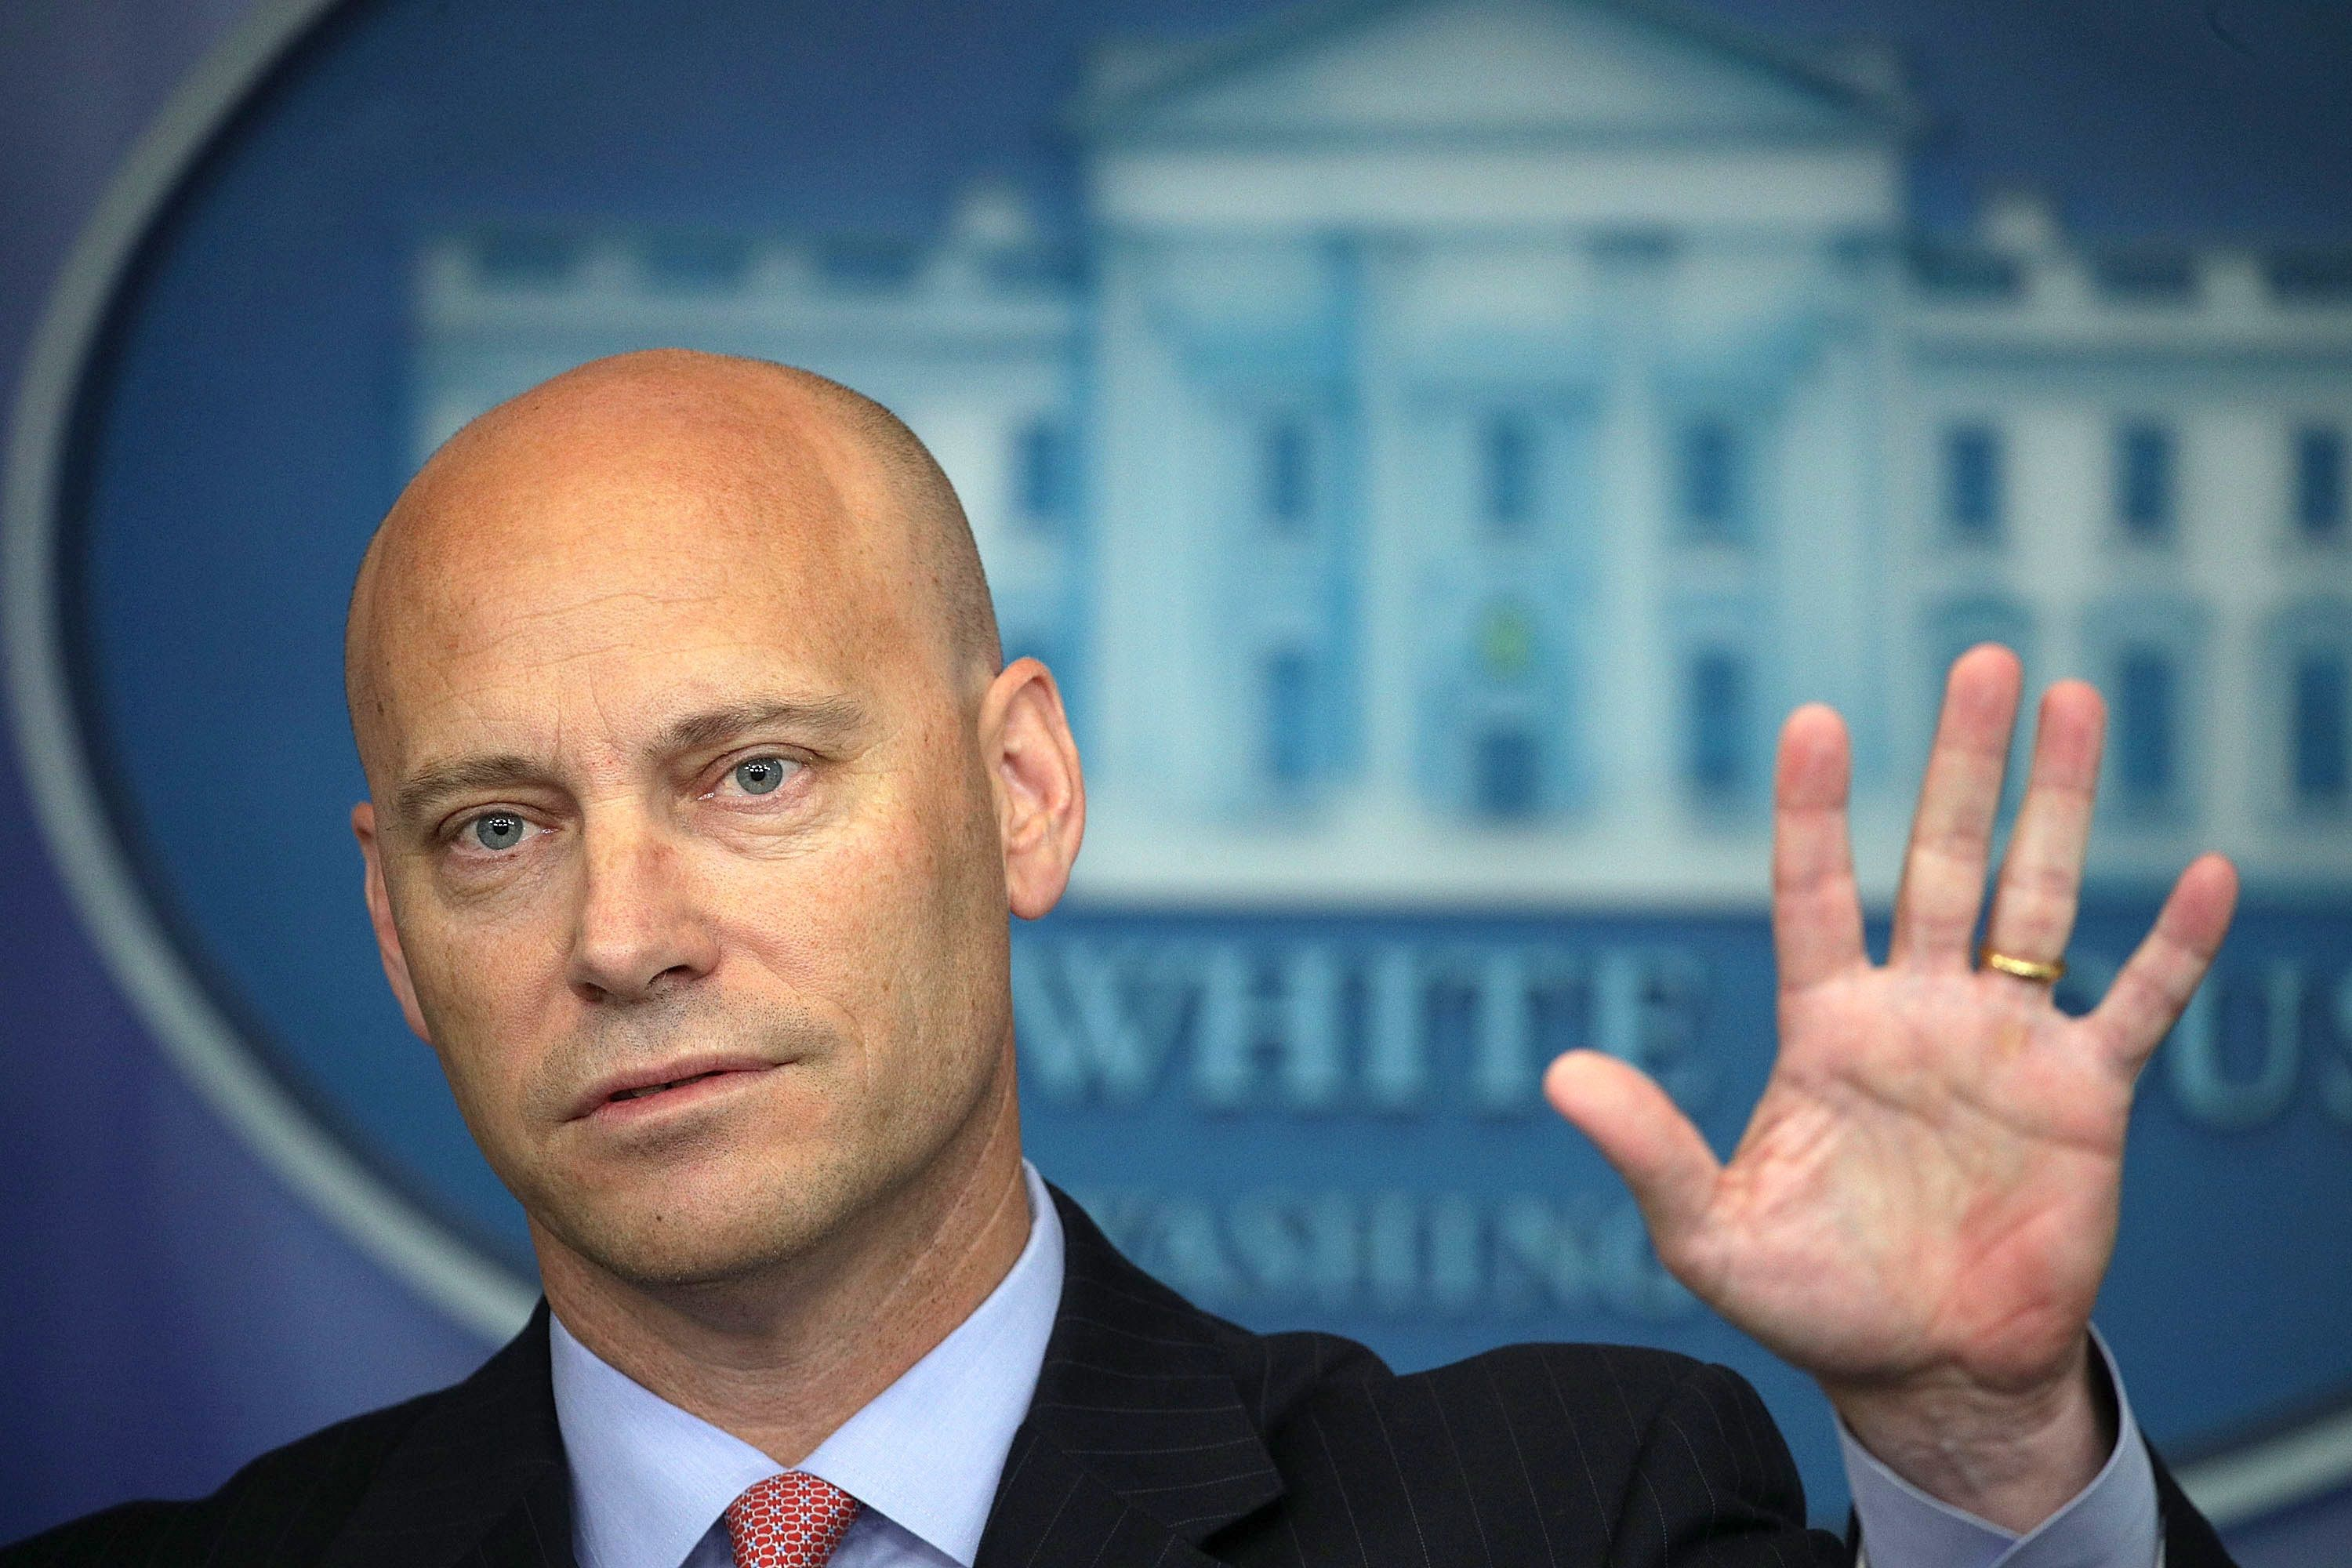 WASHINGTON, DC - JULY 10:  White House Director of Legislative Affairs Marc Short gestures as he speaks during a White House daily briefing at the James Brady Press Briefing Room of the White House July 10, 2017 in Washington, DC. Huckabee Sanders held a daily briefing to answer questions from members of the White House press corps.  (Photo by Alex Wong/Getty Images)